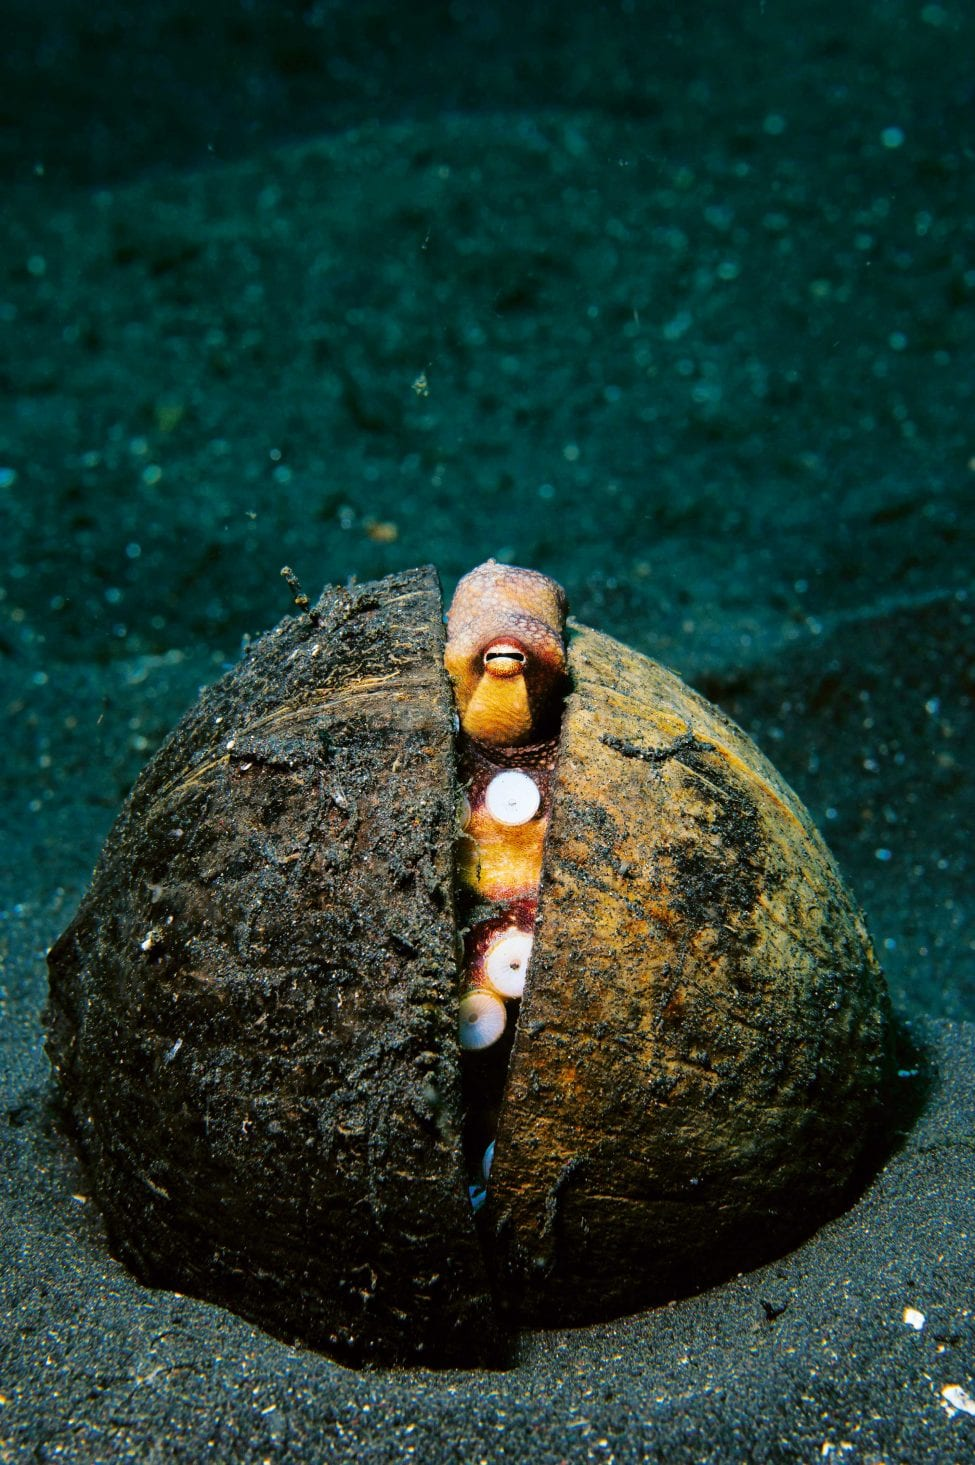 The coconut octopus, found in Lembeh Strait, Sulawesi, secretes itself inside a shell for shelter and as camouflage from predators. <br /> Photo by Stocktrek Images | National Geographic Image Collection